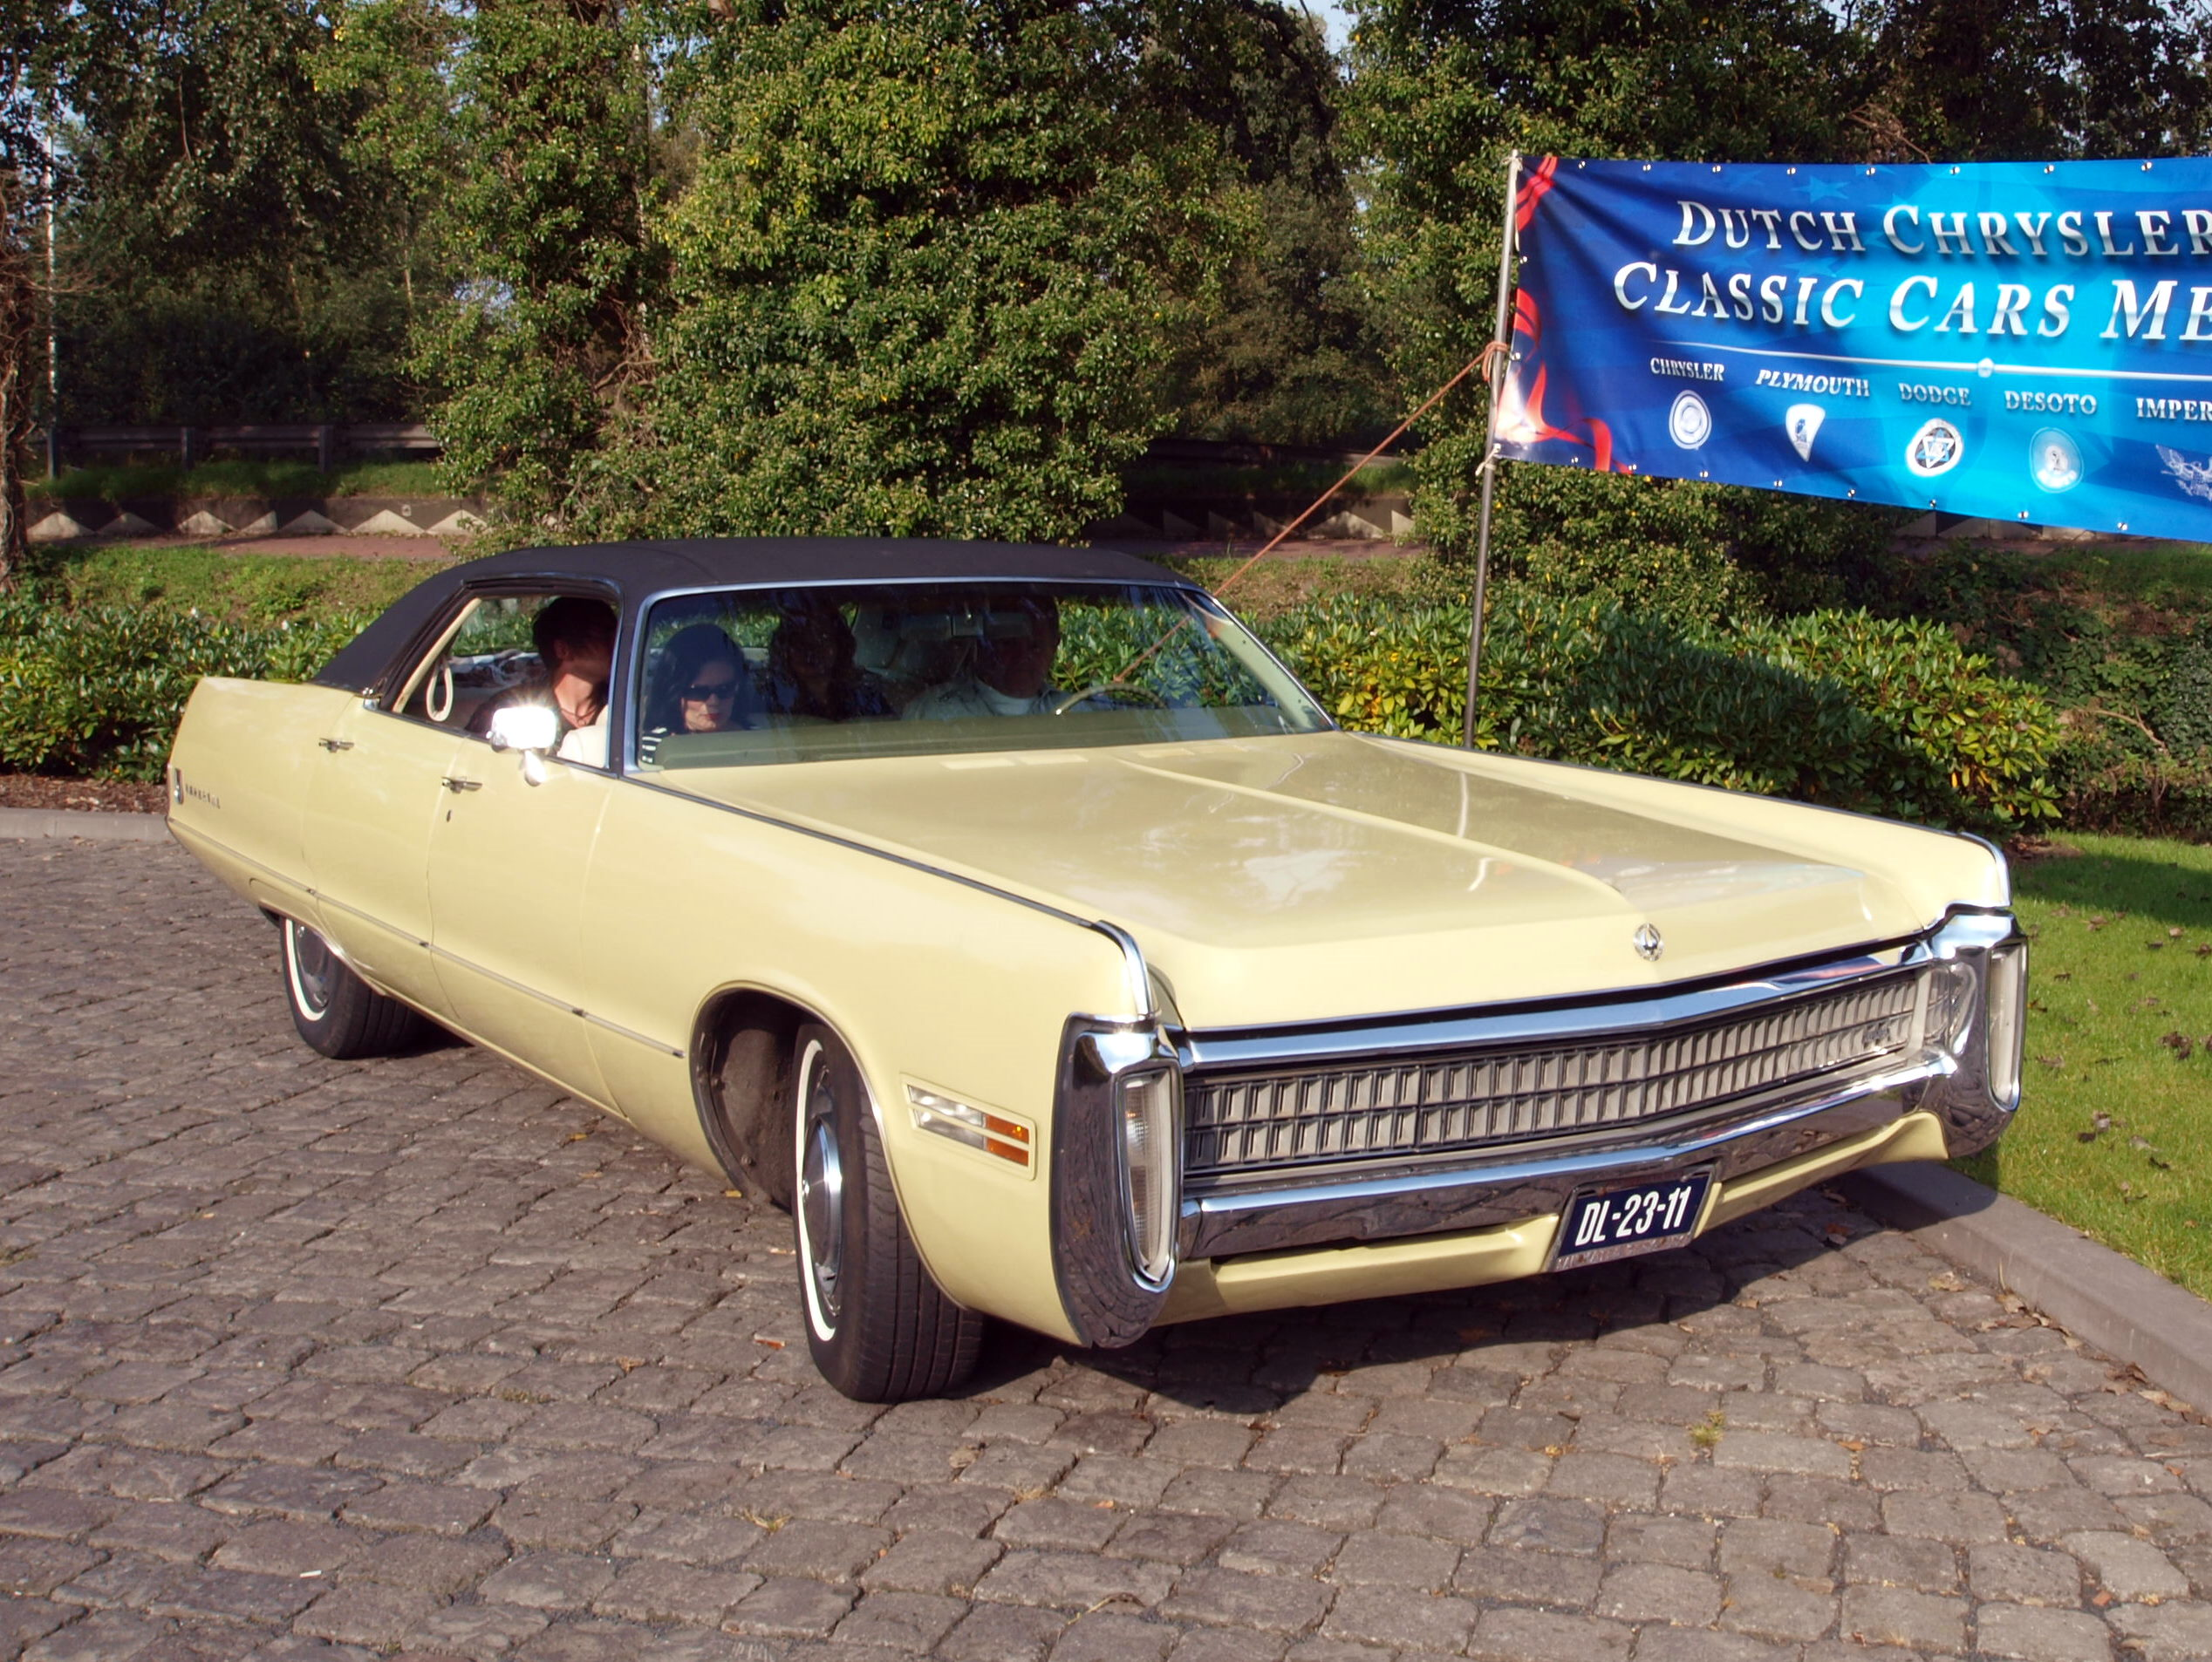 1973 chrysler new yorker with File 1972 Chrysler Imperial Le Baron Photo 5 on File 1962 Buick Electra 225 together with 272021270915 besides 131871095308785403 additionally 1974 Chevrolet Caprice Classic photo together with 1.